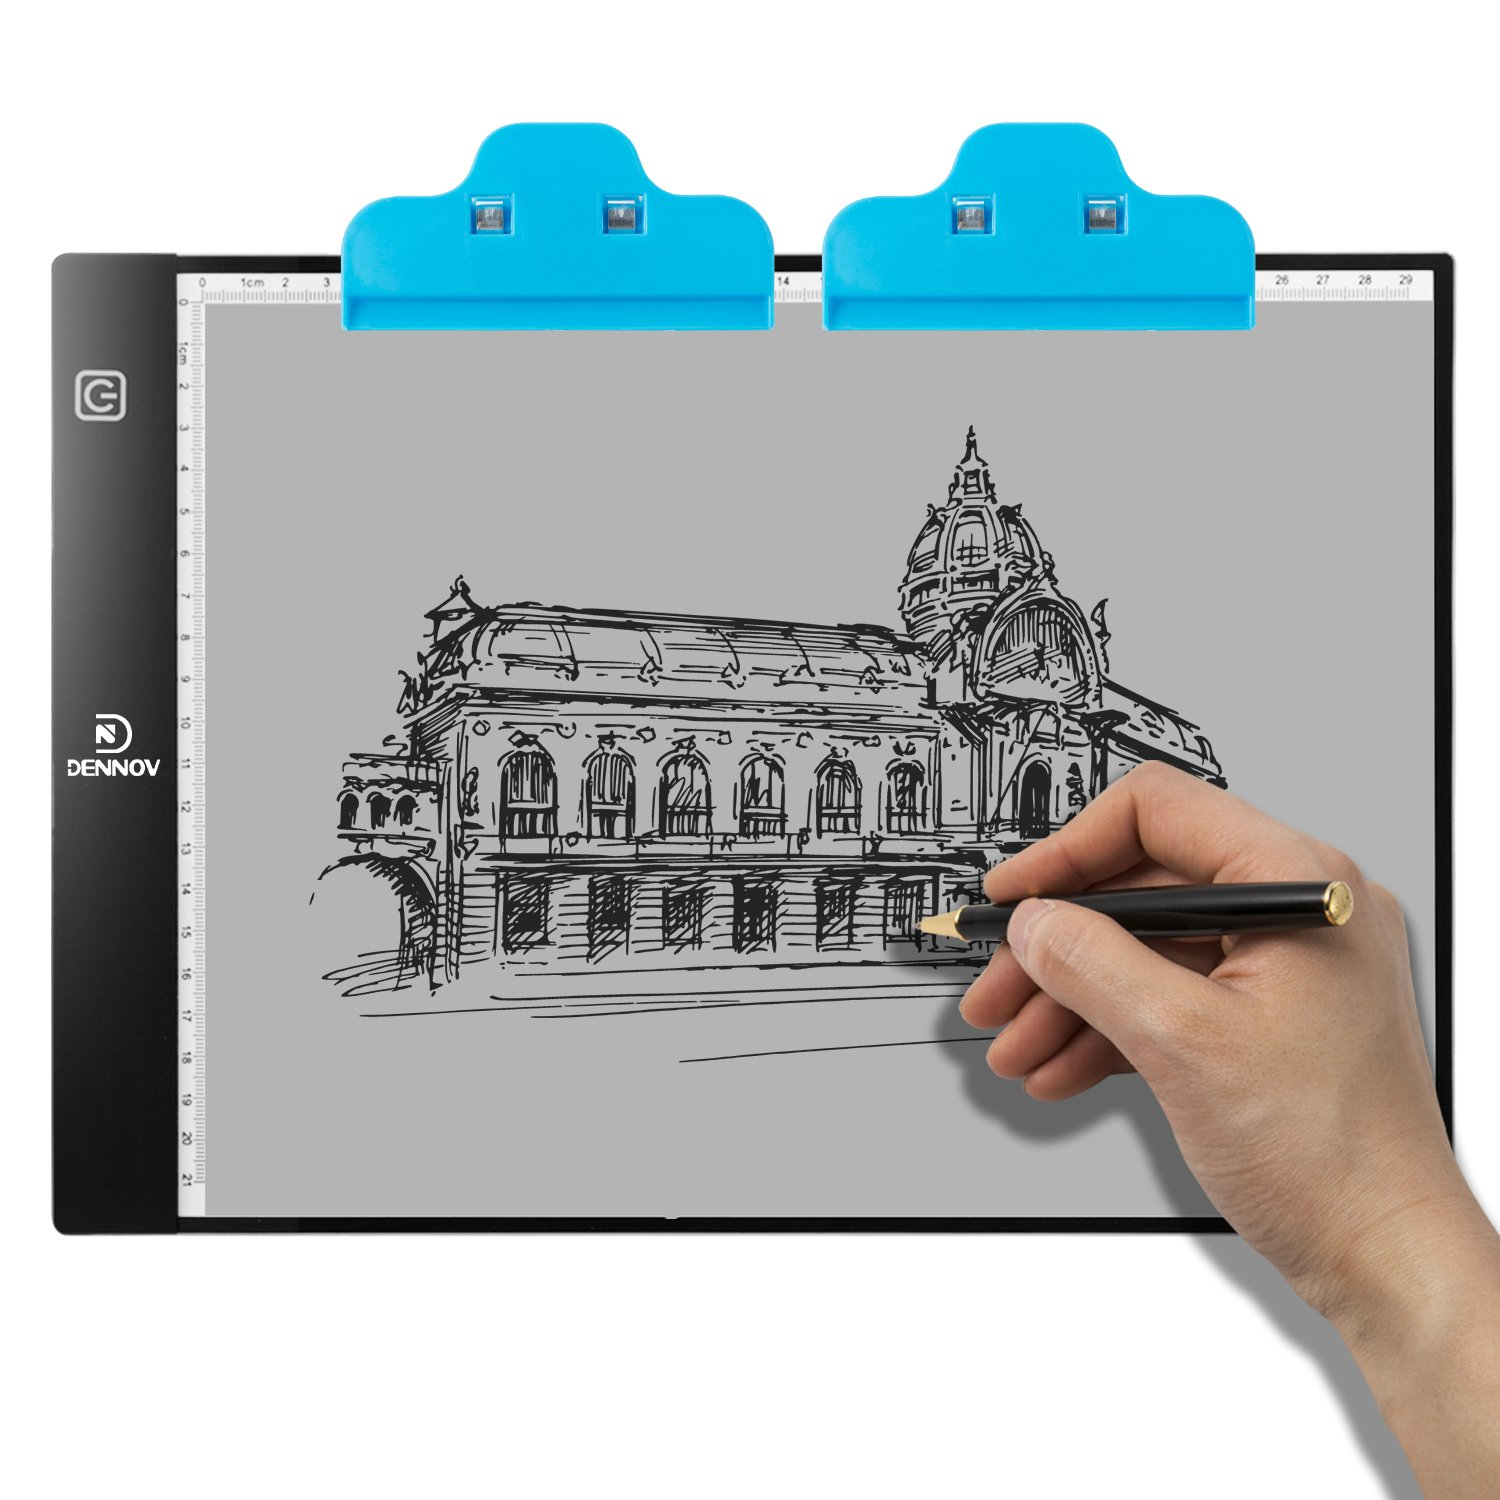 Dennov A4 Portable LED Light Box Tracer Pad Board Tablet for Artists Drawing Sketching Animation Stenciling and X-Ray Viewing